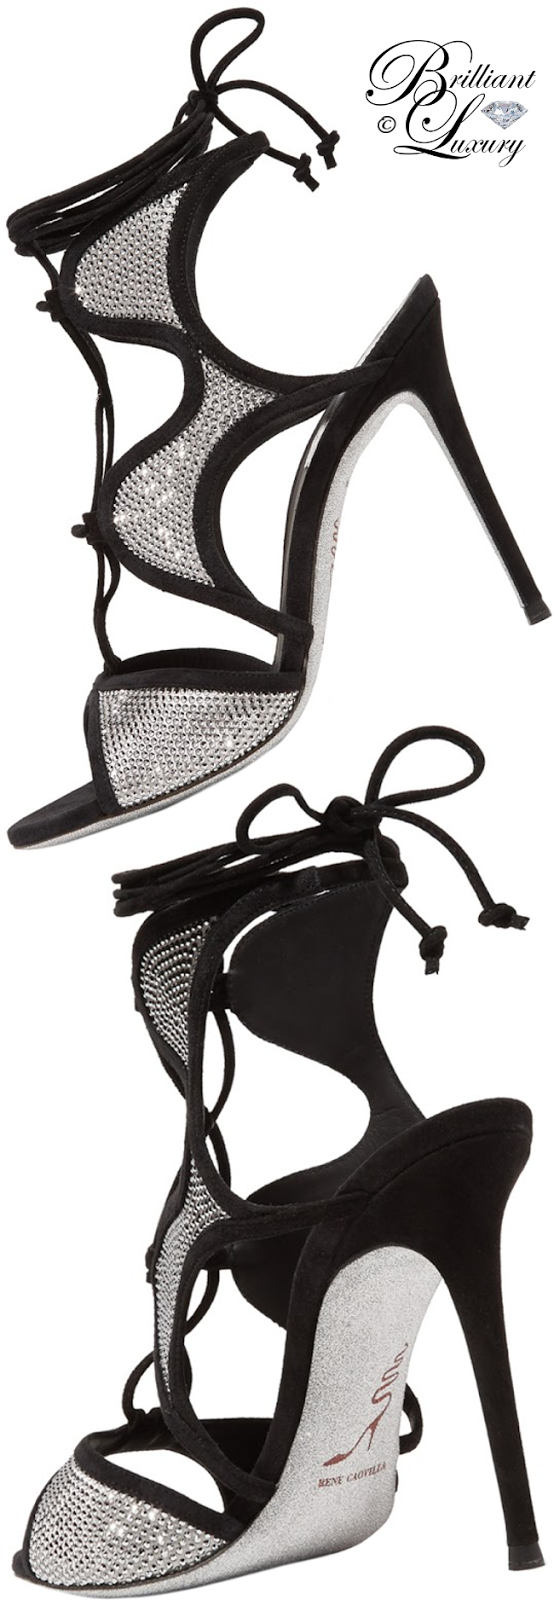 Brilliant Luxury ♦ René Caovilla Crystal-Embellished Suede Ankle-Wrap Sandal